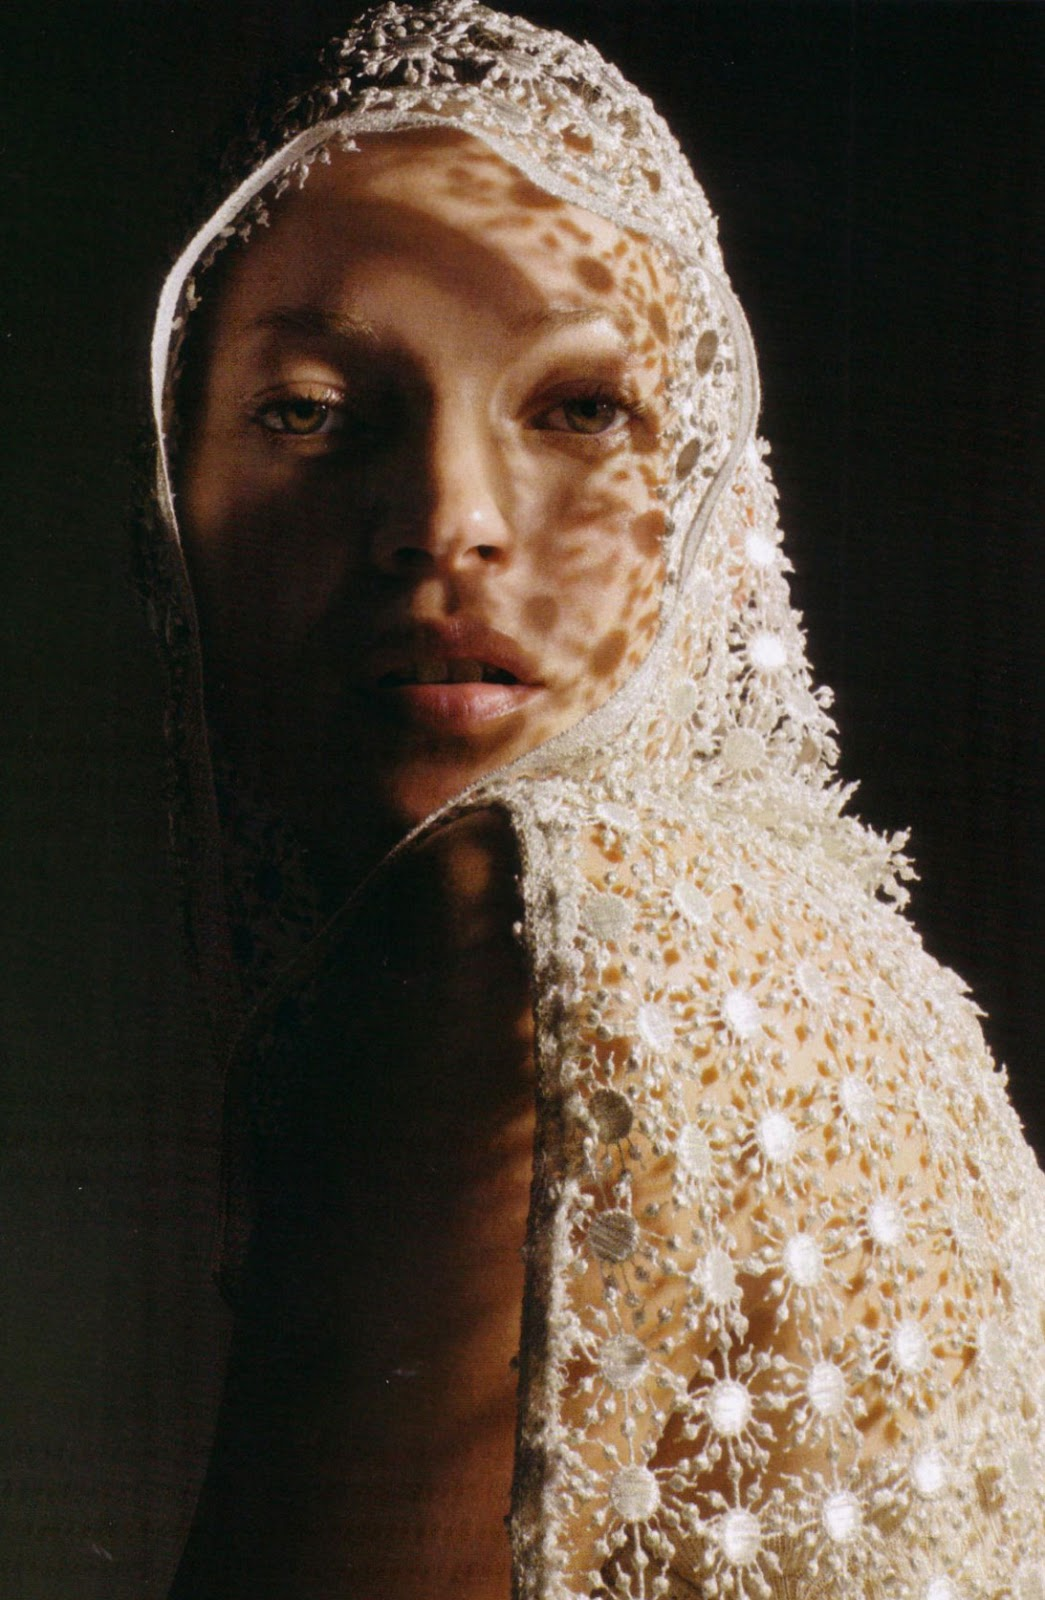 Kate Moss in The girl of a singular beauty | Vogue Italia March 2006 (photography:  Mario Sorrenti)